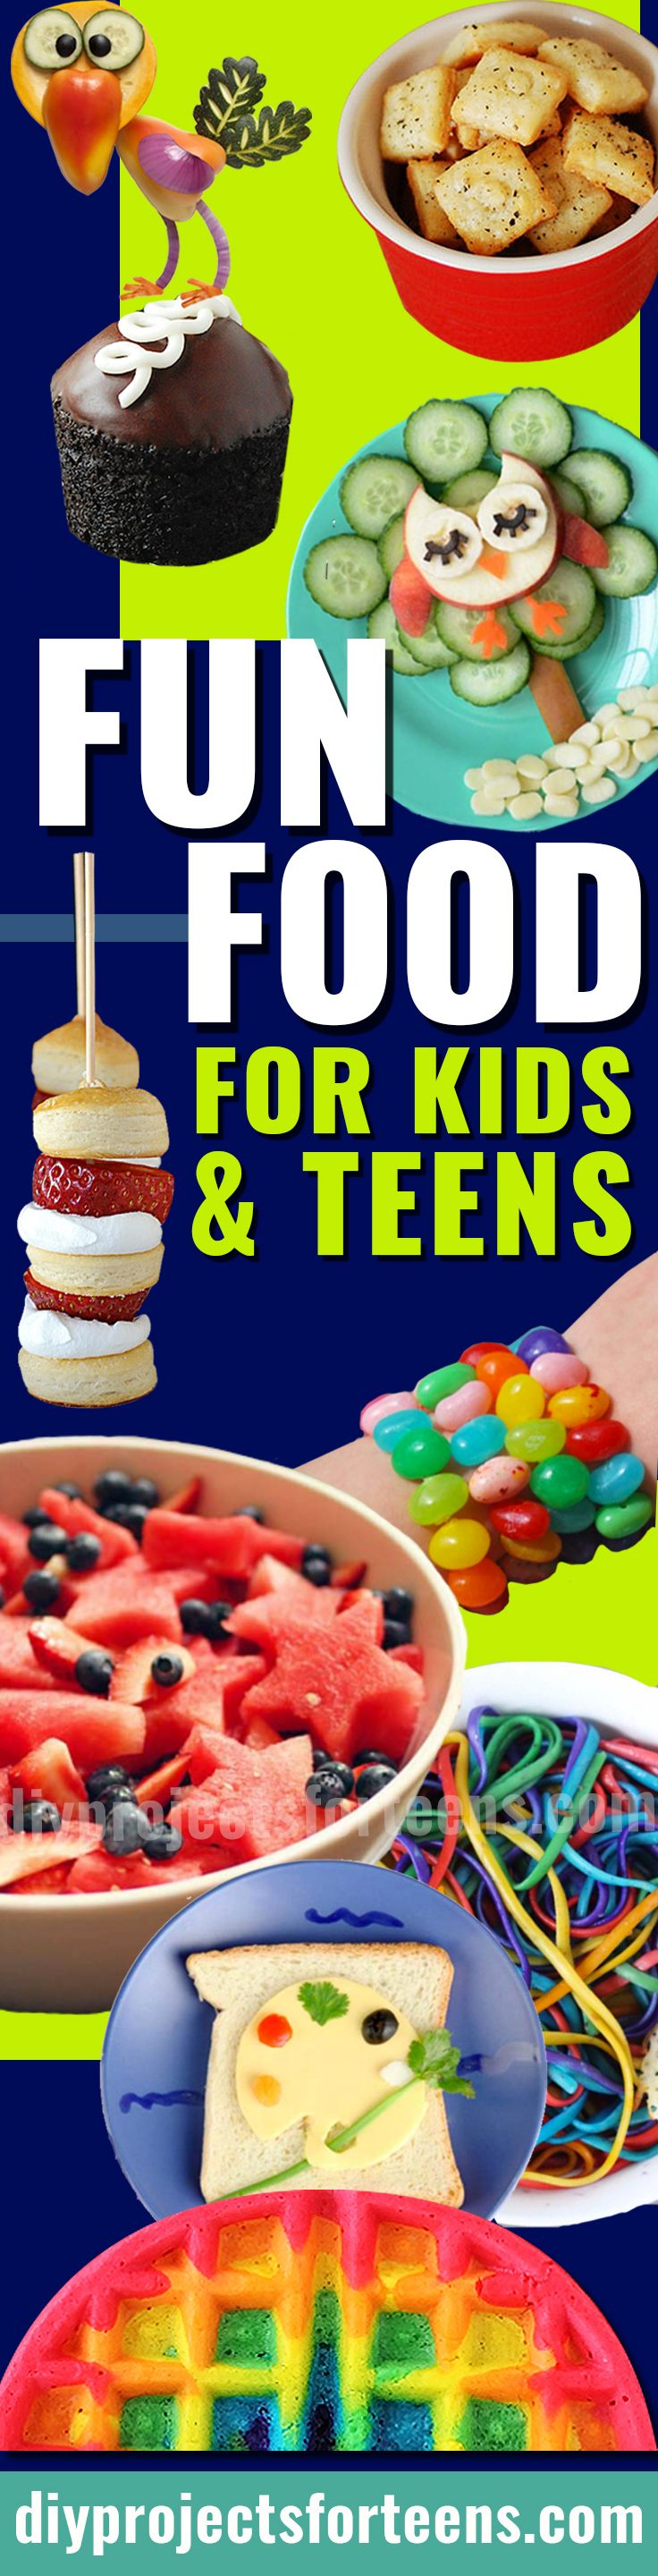 34 Fun Foods for Kids and Teens | Boys and Girls, Toddlers, Tweens and Teenagers all love these Easy Recipe Ideas - So Do Adults